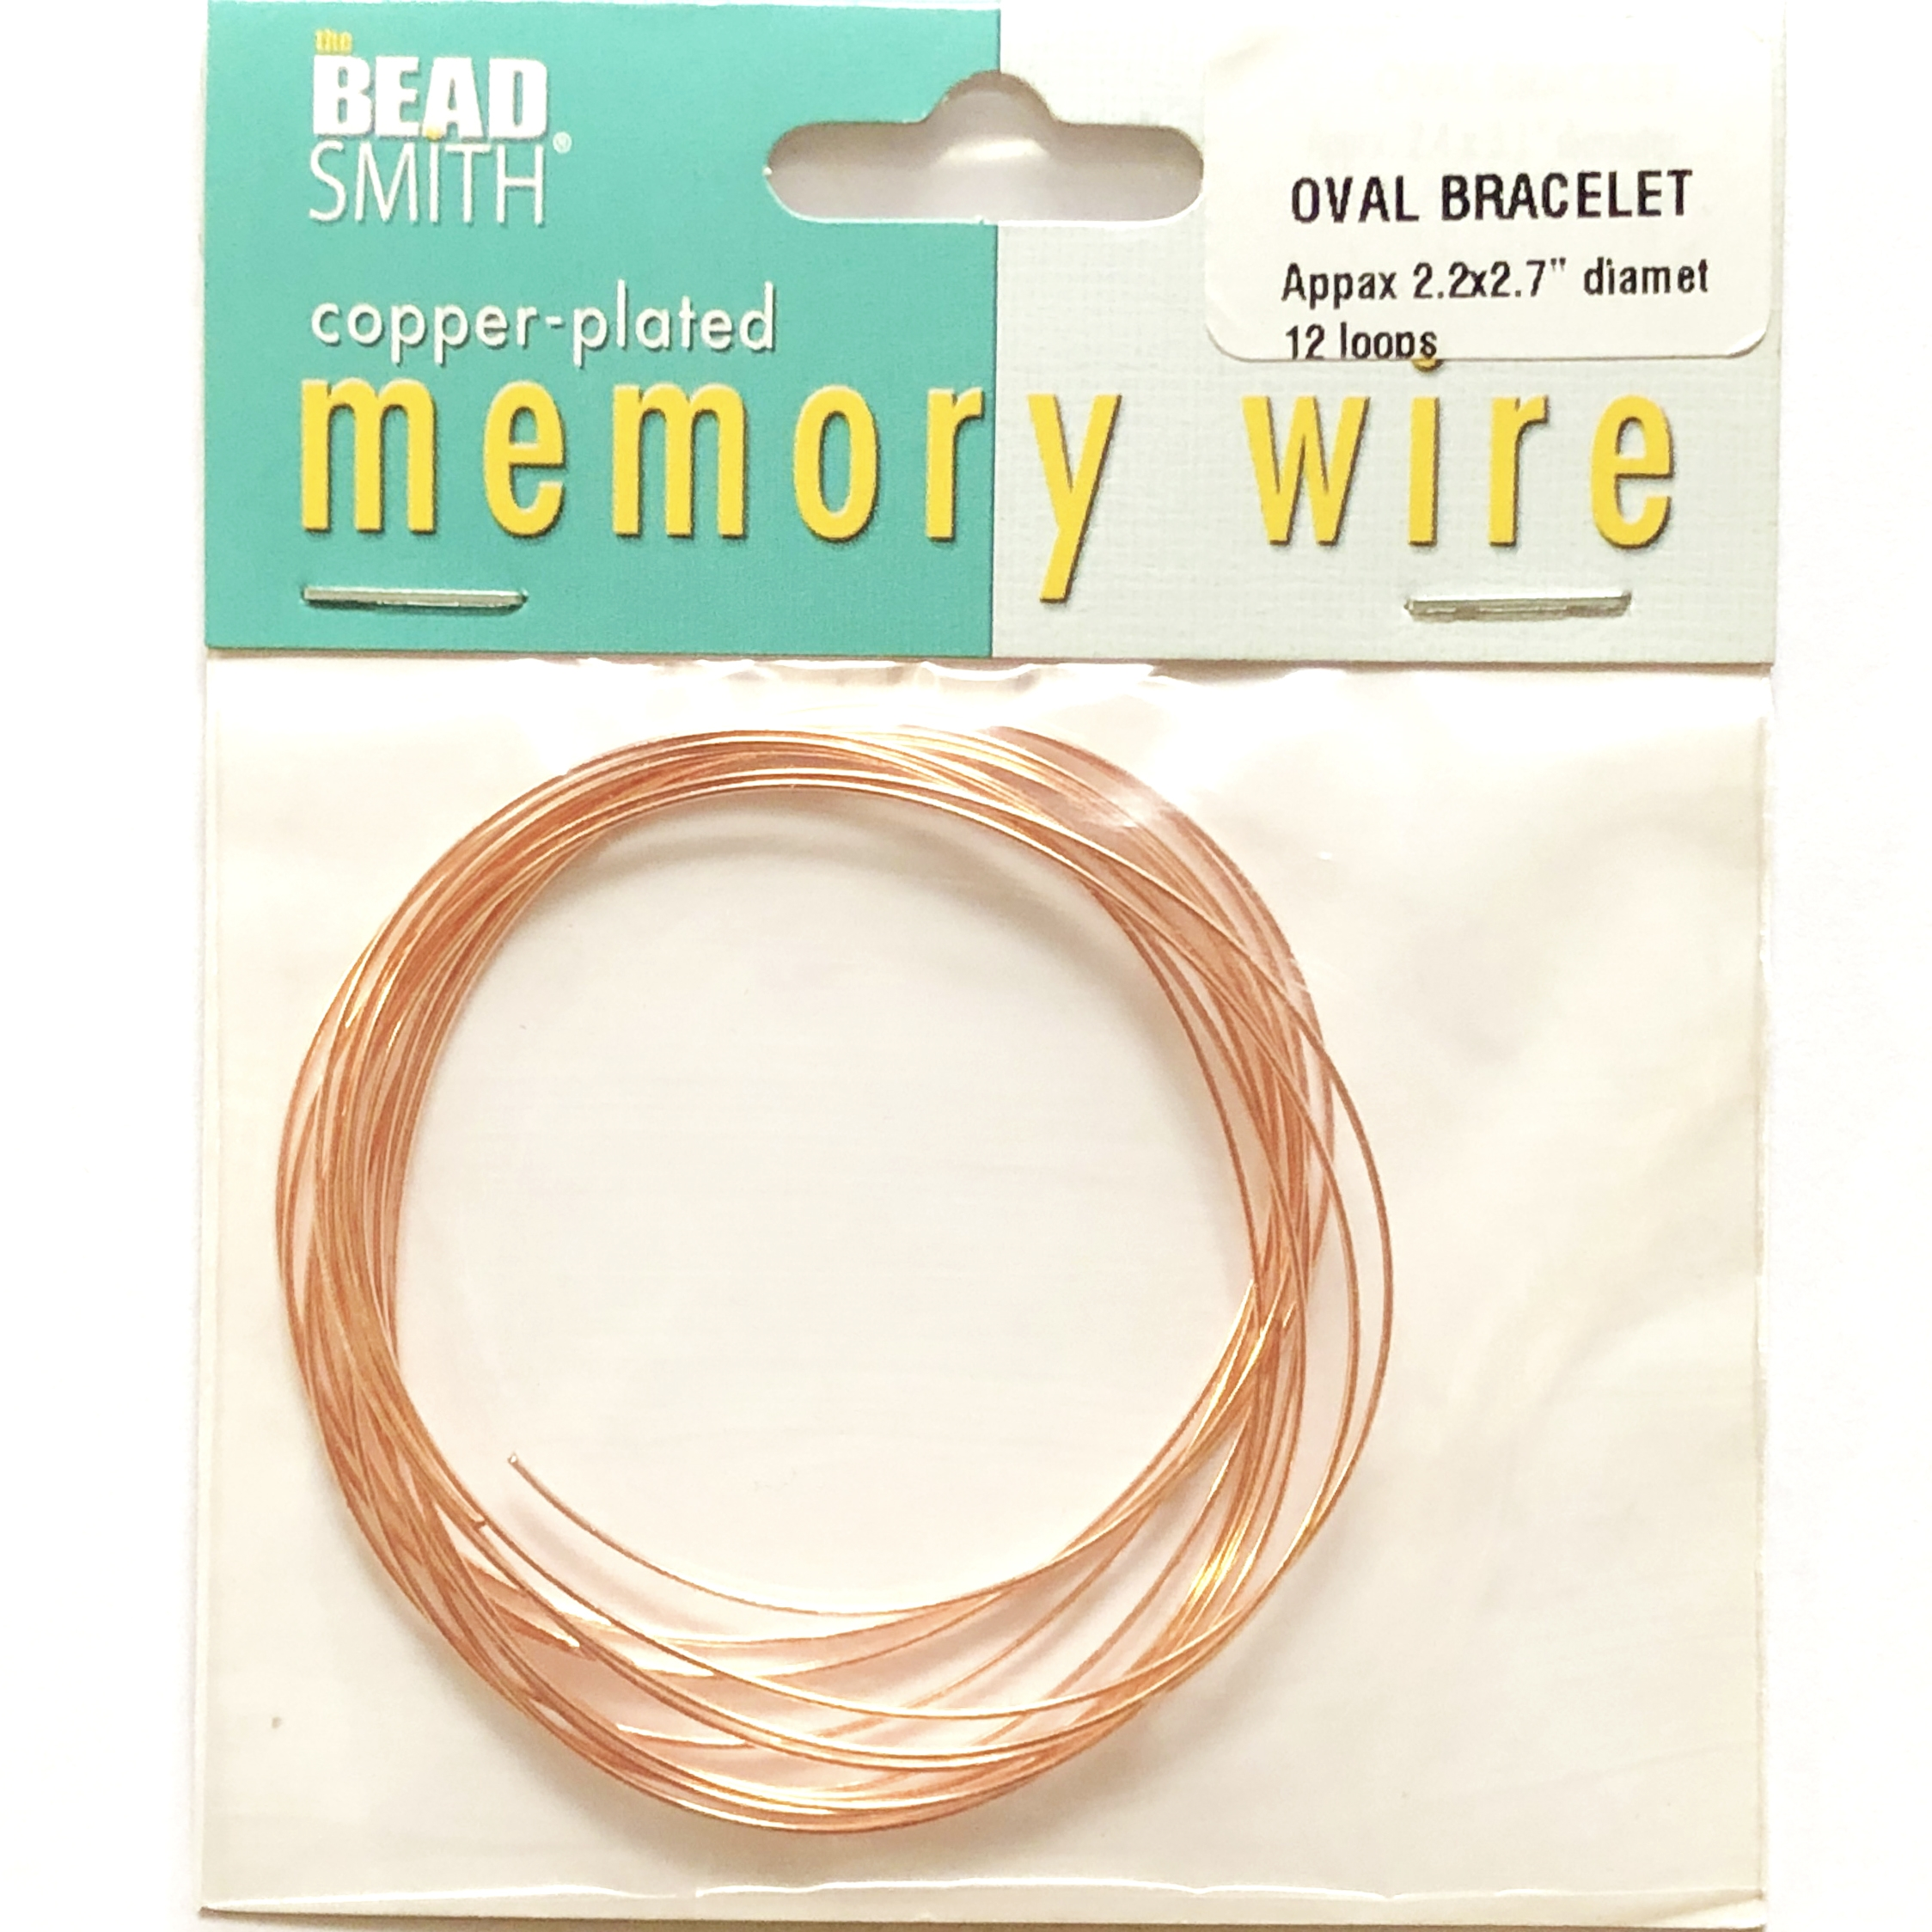 Oval Memory Wire, Copper Plate, 09799, bracelet wire, jewelry wire, craft wire, jewelry making supplies, stainless steel memory wire, 12 loop wire, oval wire